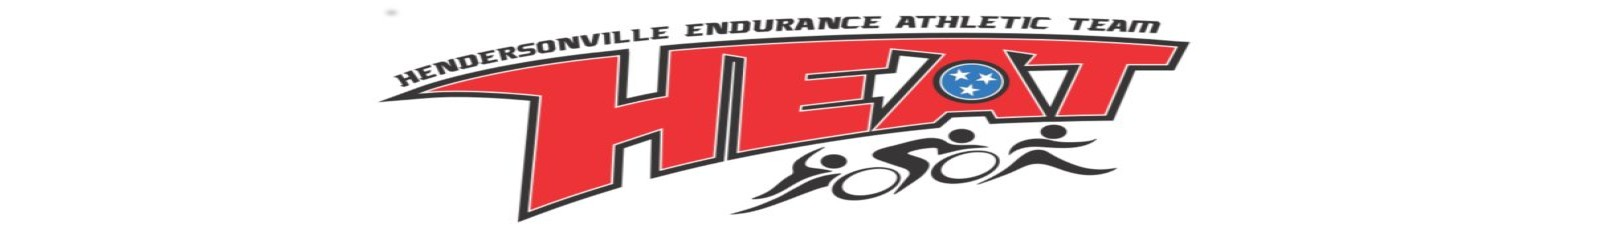 Hendersonville Endurance Athletic Team